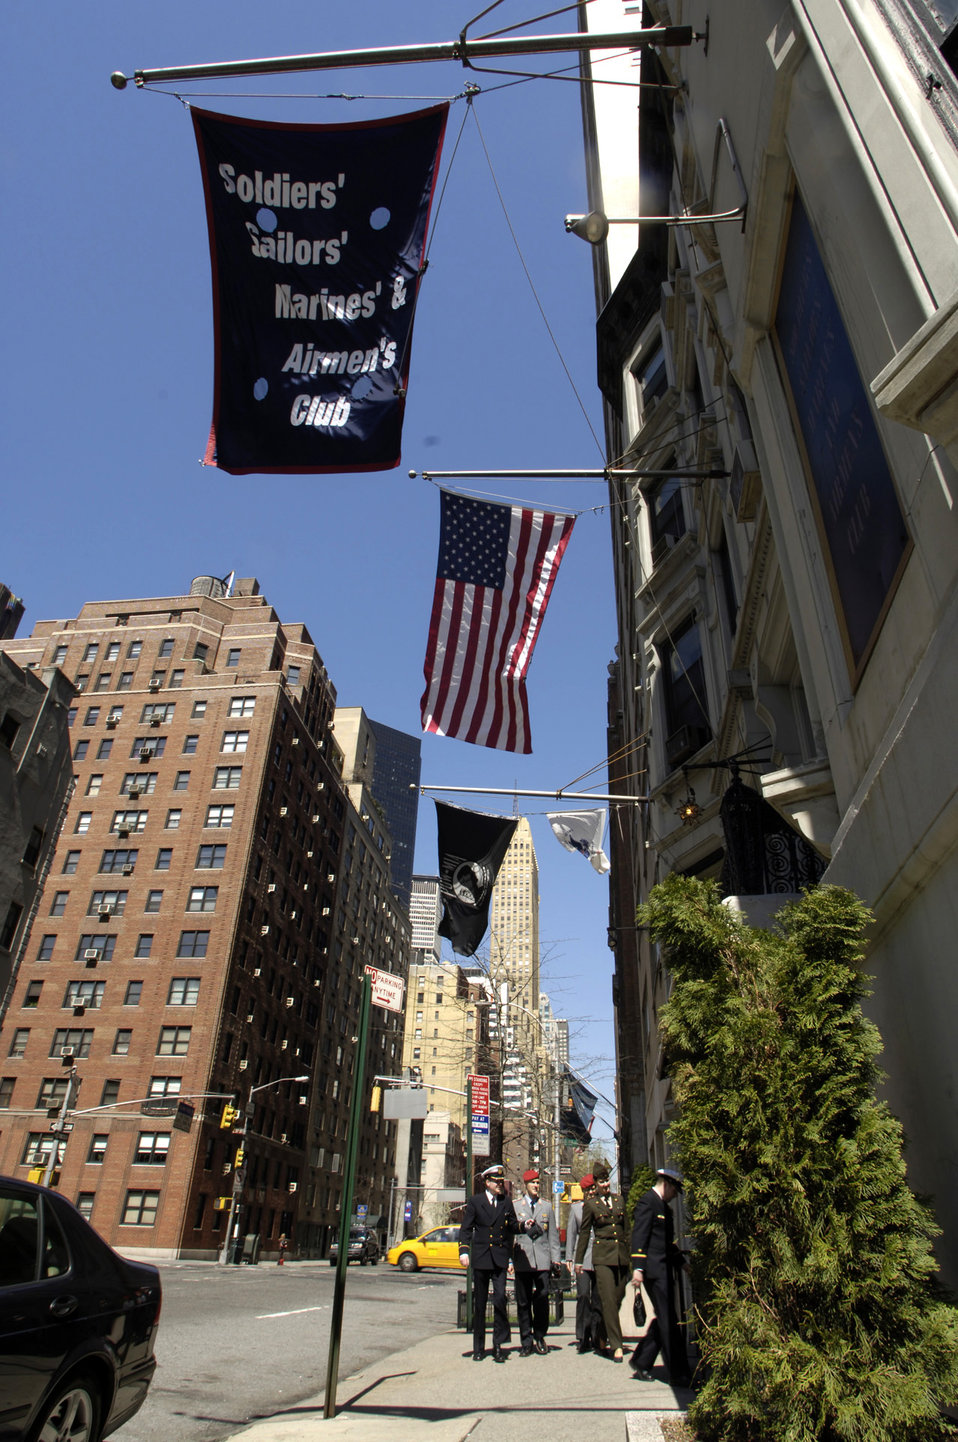 Manhattan's cheapest lodging for 'Those Who Serve'